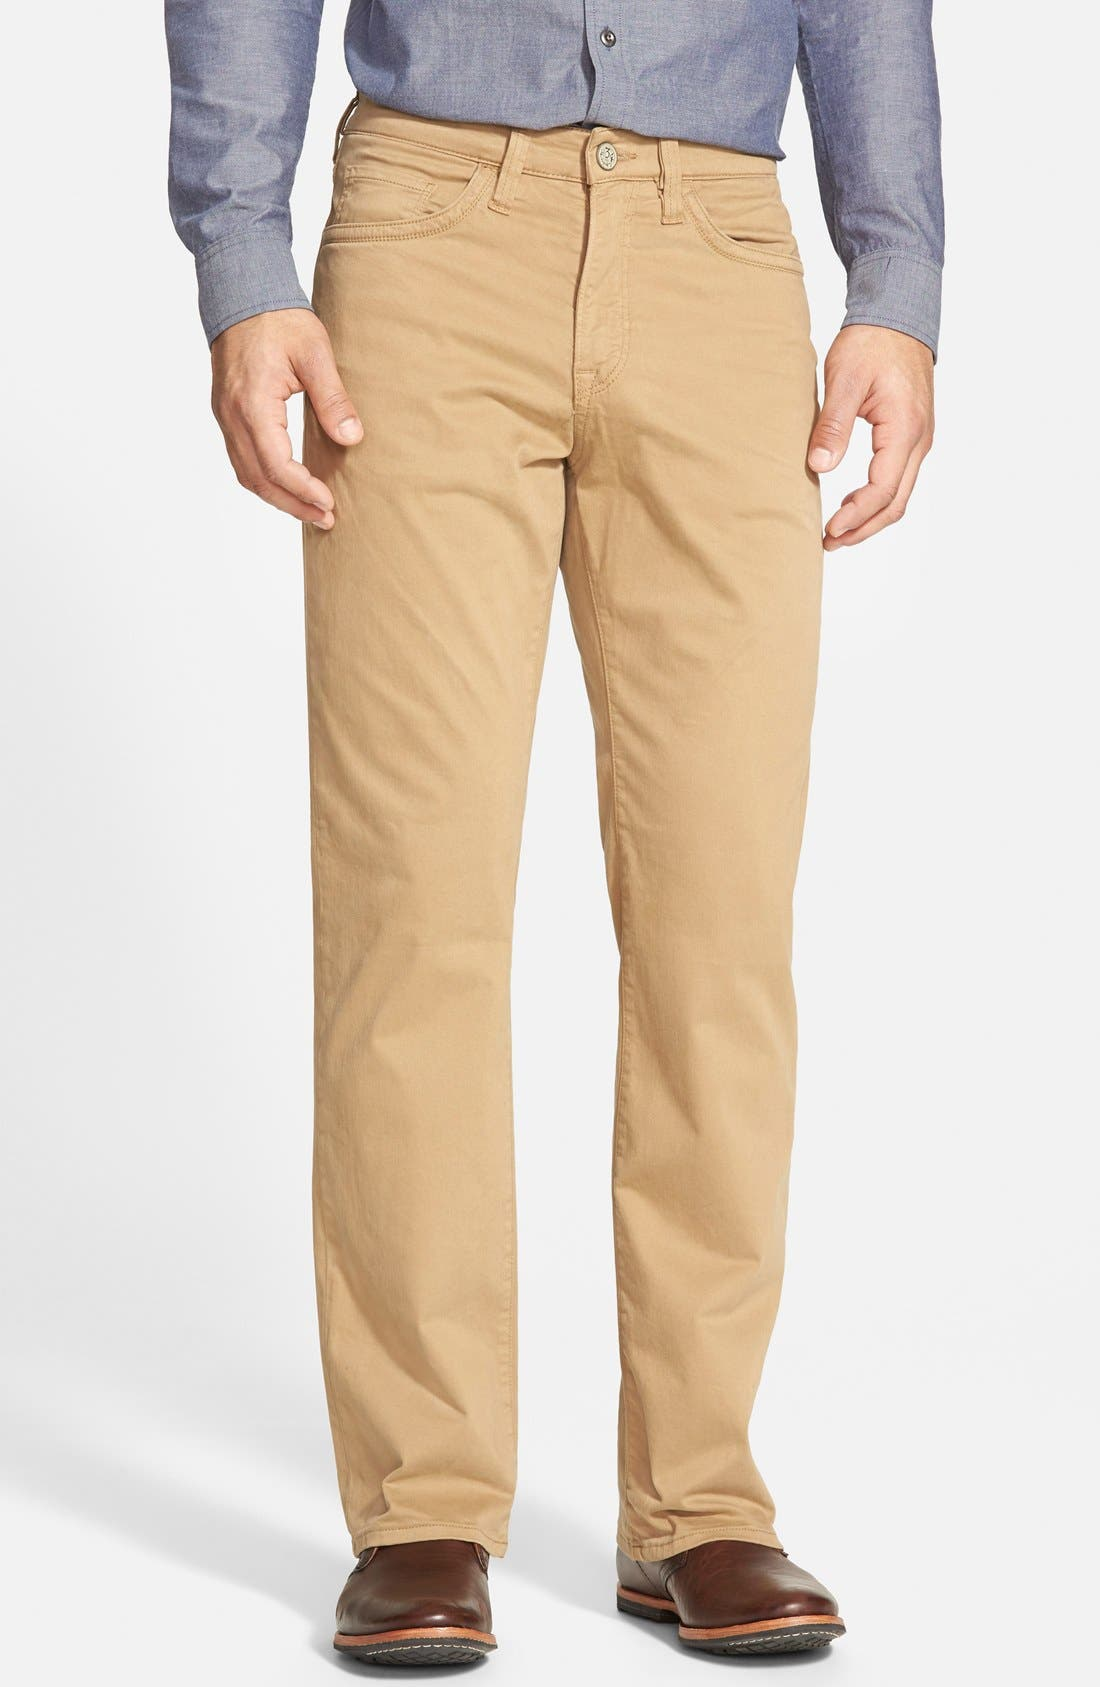 'Charisma' Classic Relaxed Fit Pants,                         Main,                         color, Beige/ Khaki